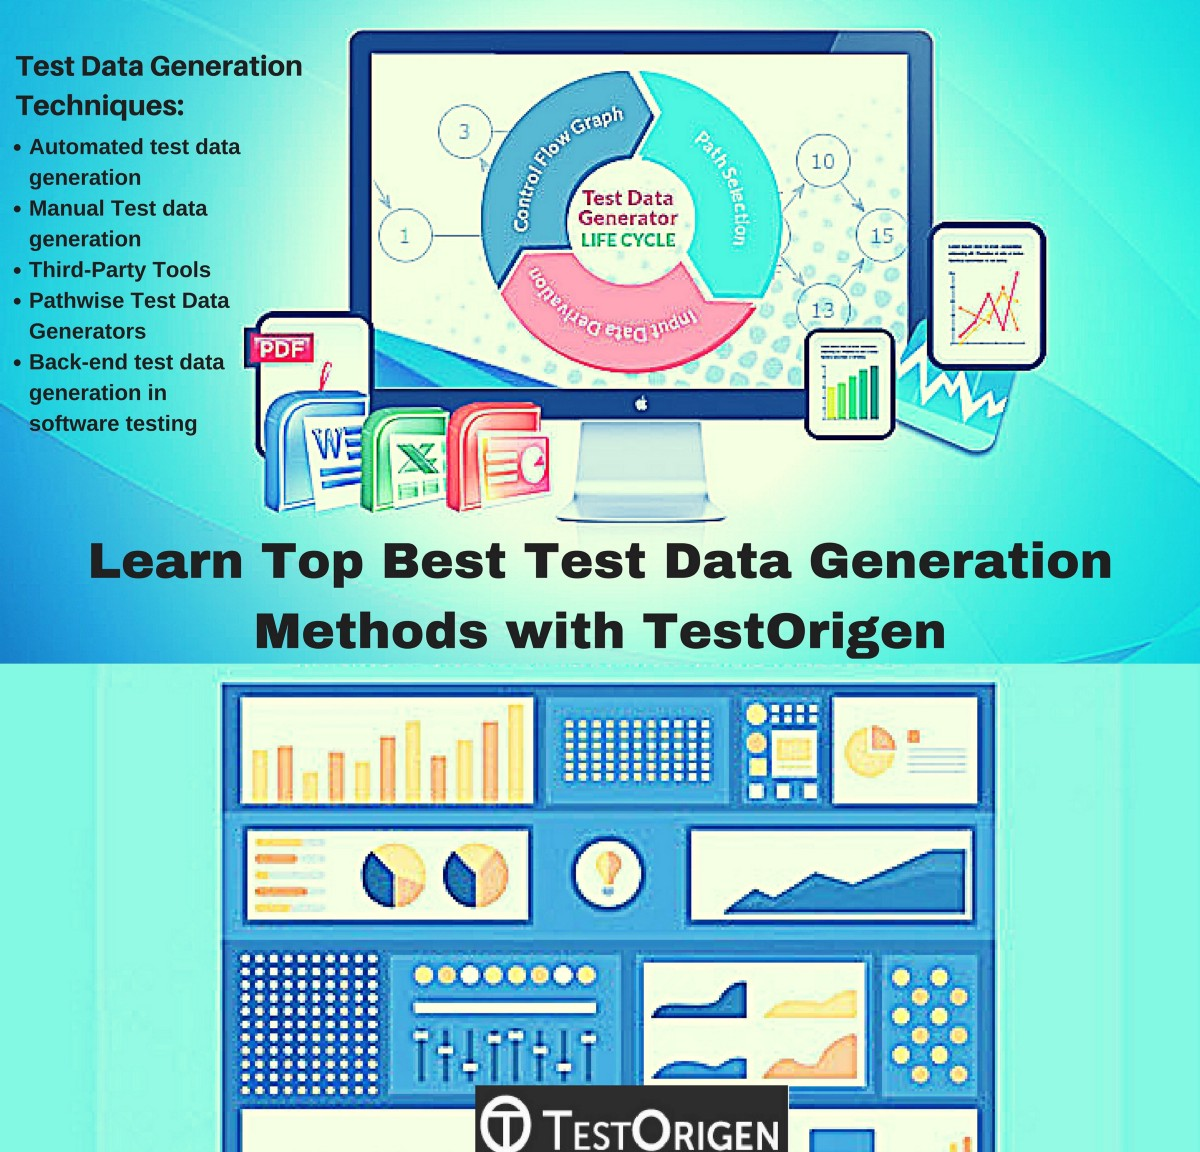 Learn Top Best Test Data Generation Methods with TestOrigen